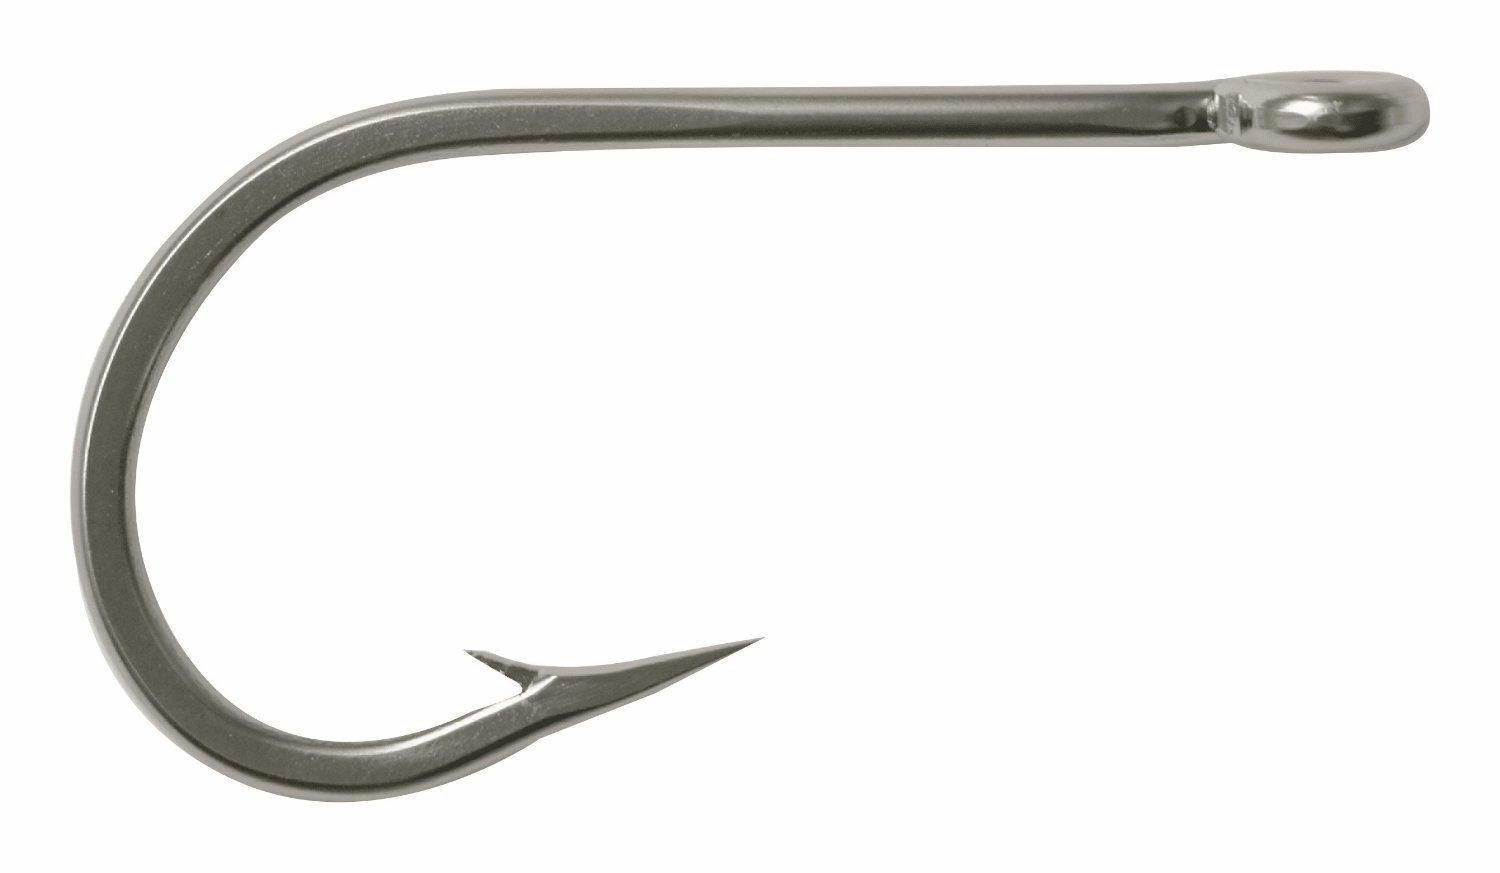 Stainless Steel Trolling Tuna Hooks- Model 7691S - 9/0 - 20 pcs